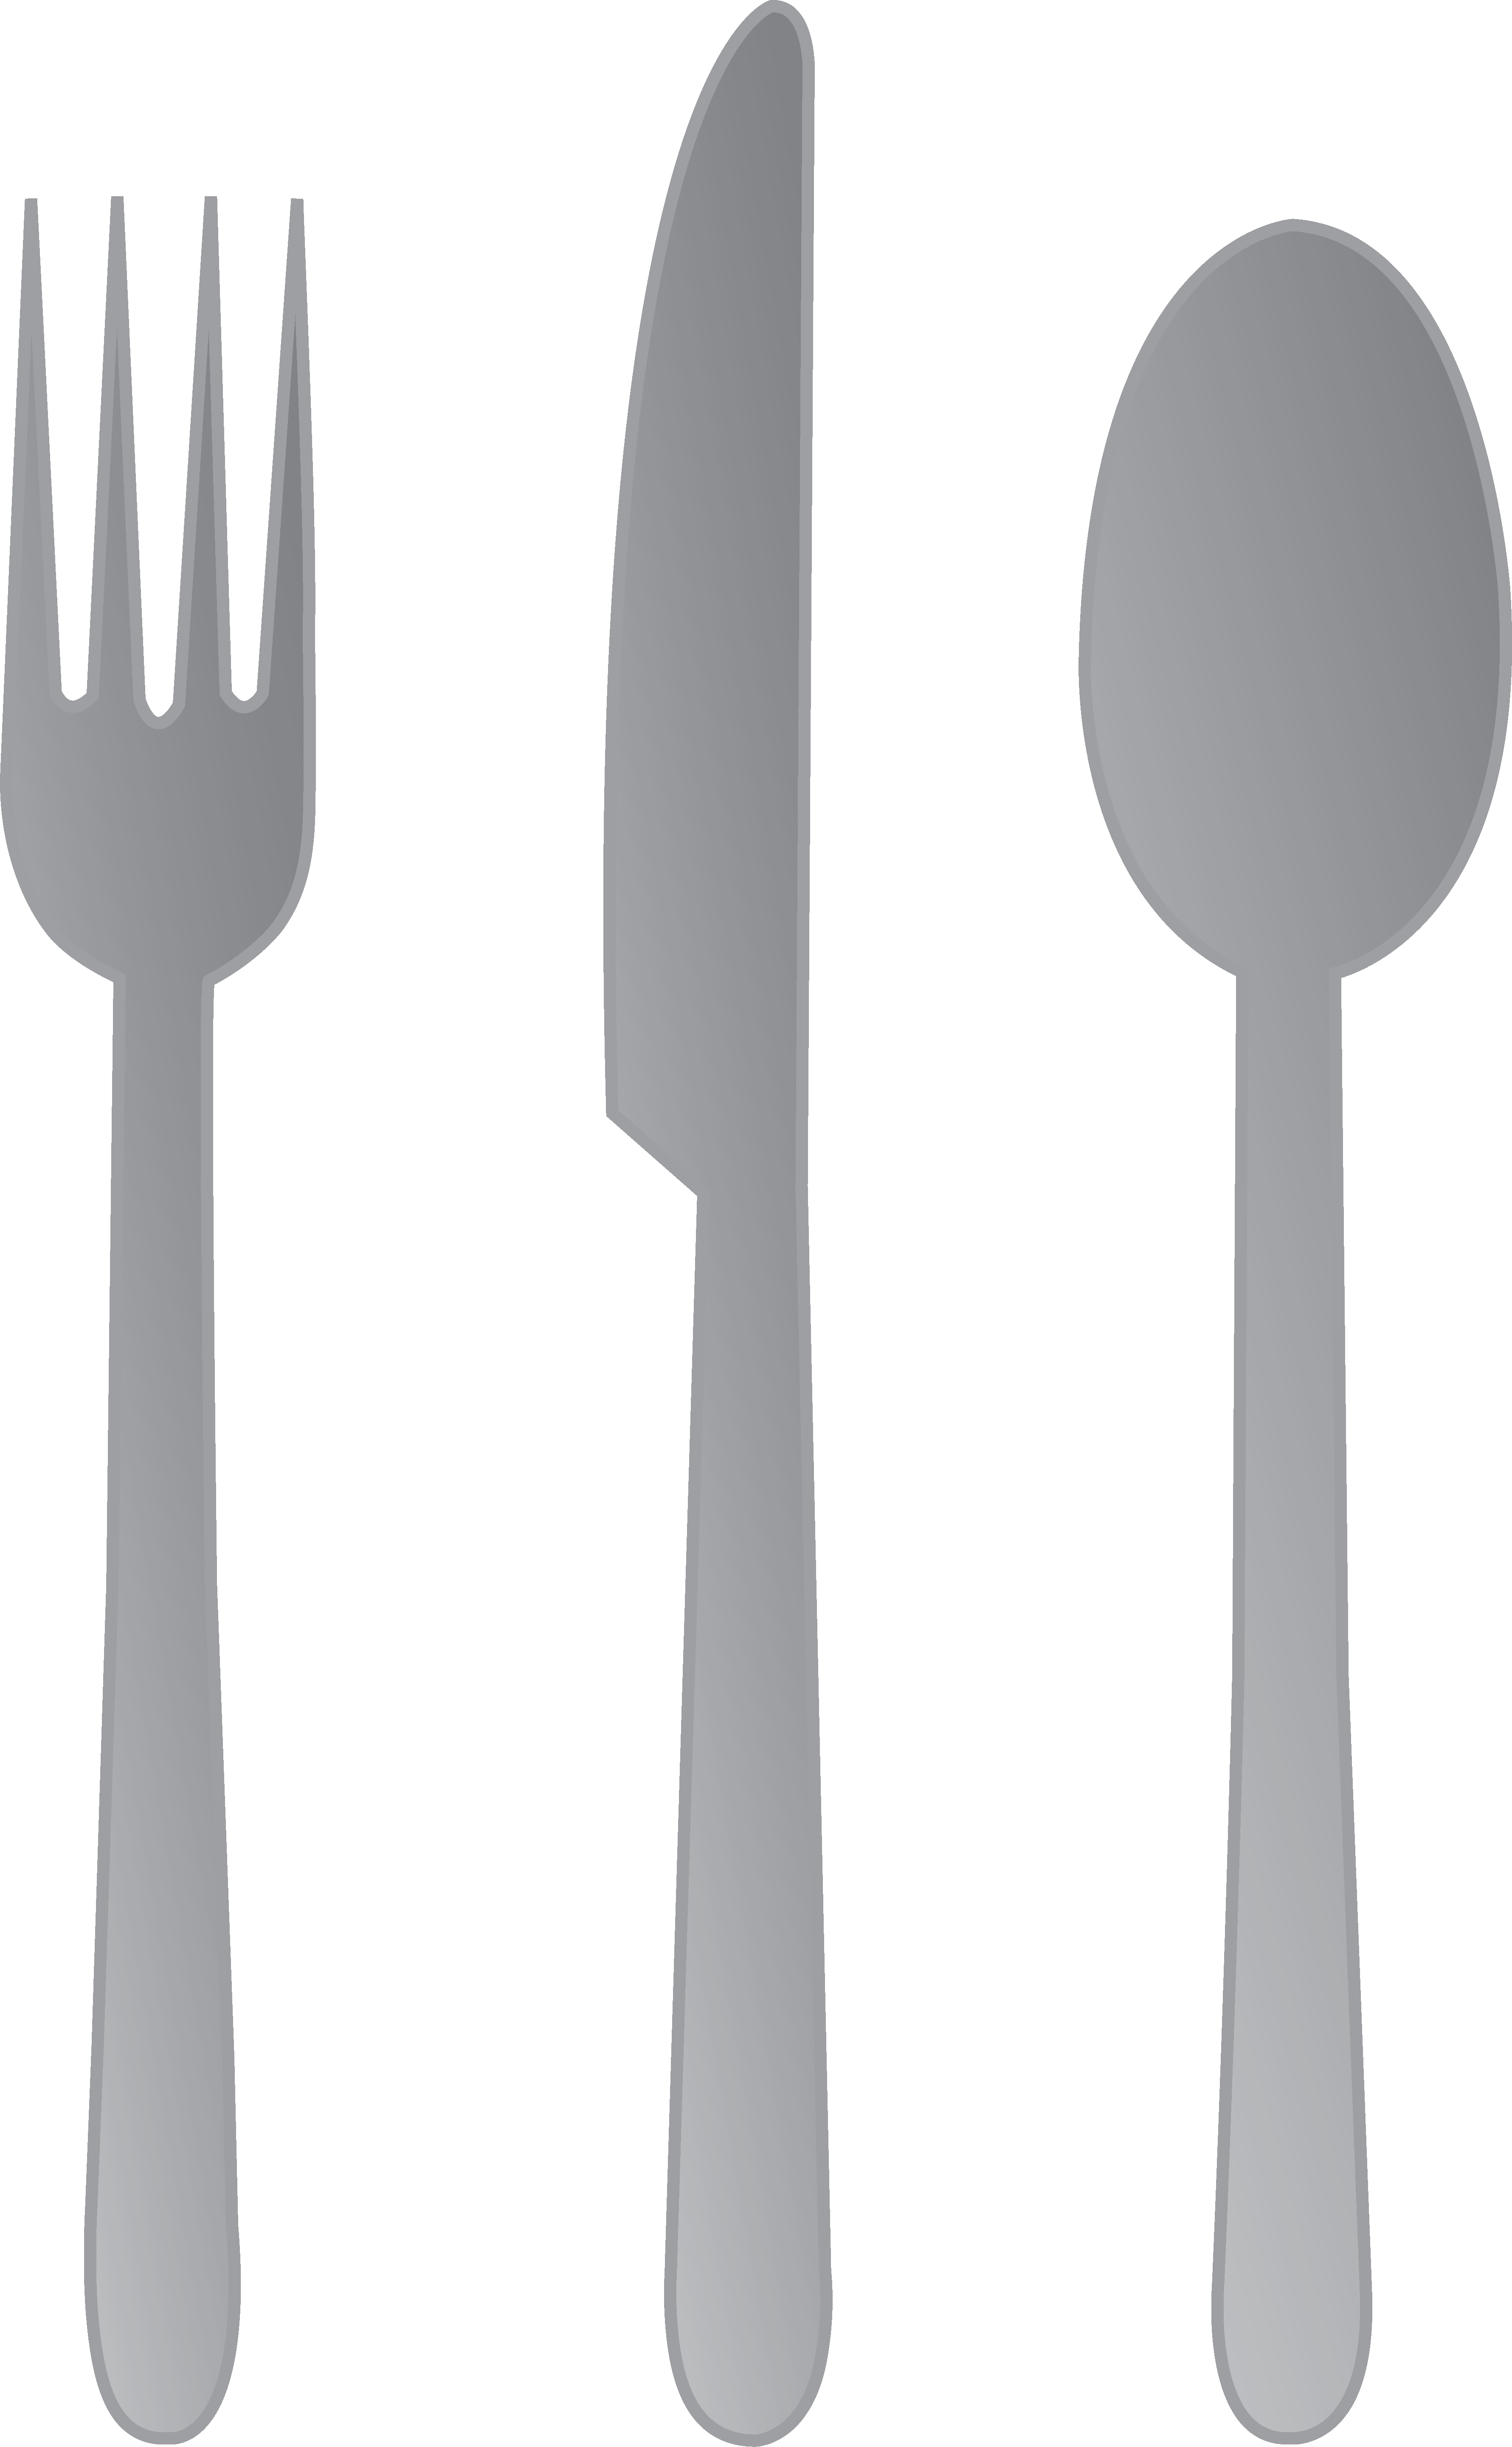 Fork Knife and Spoon.